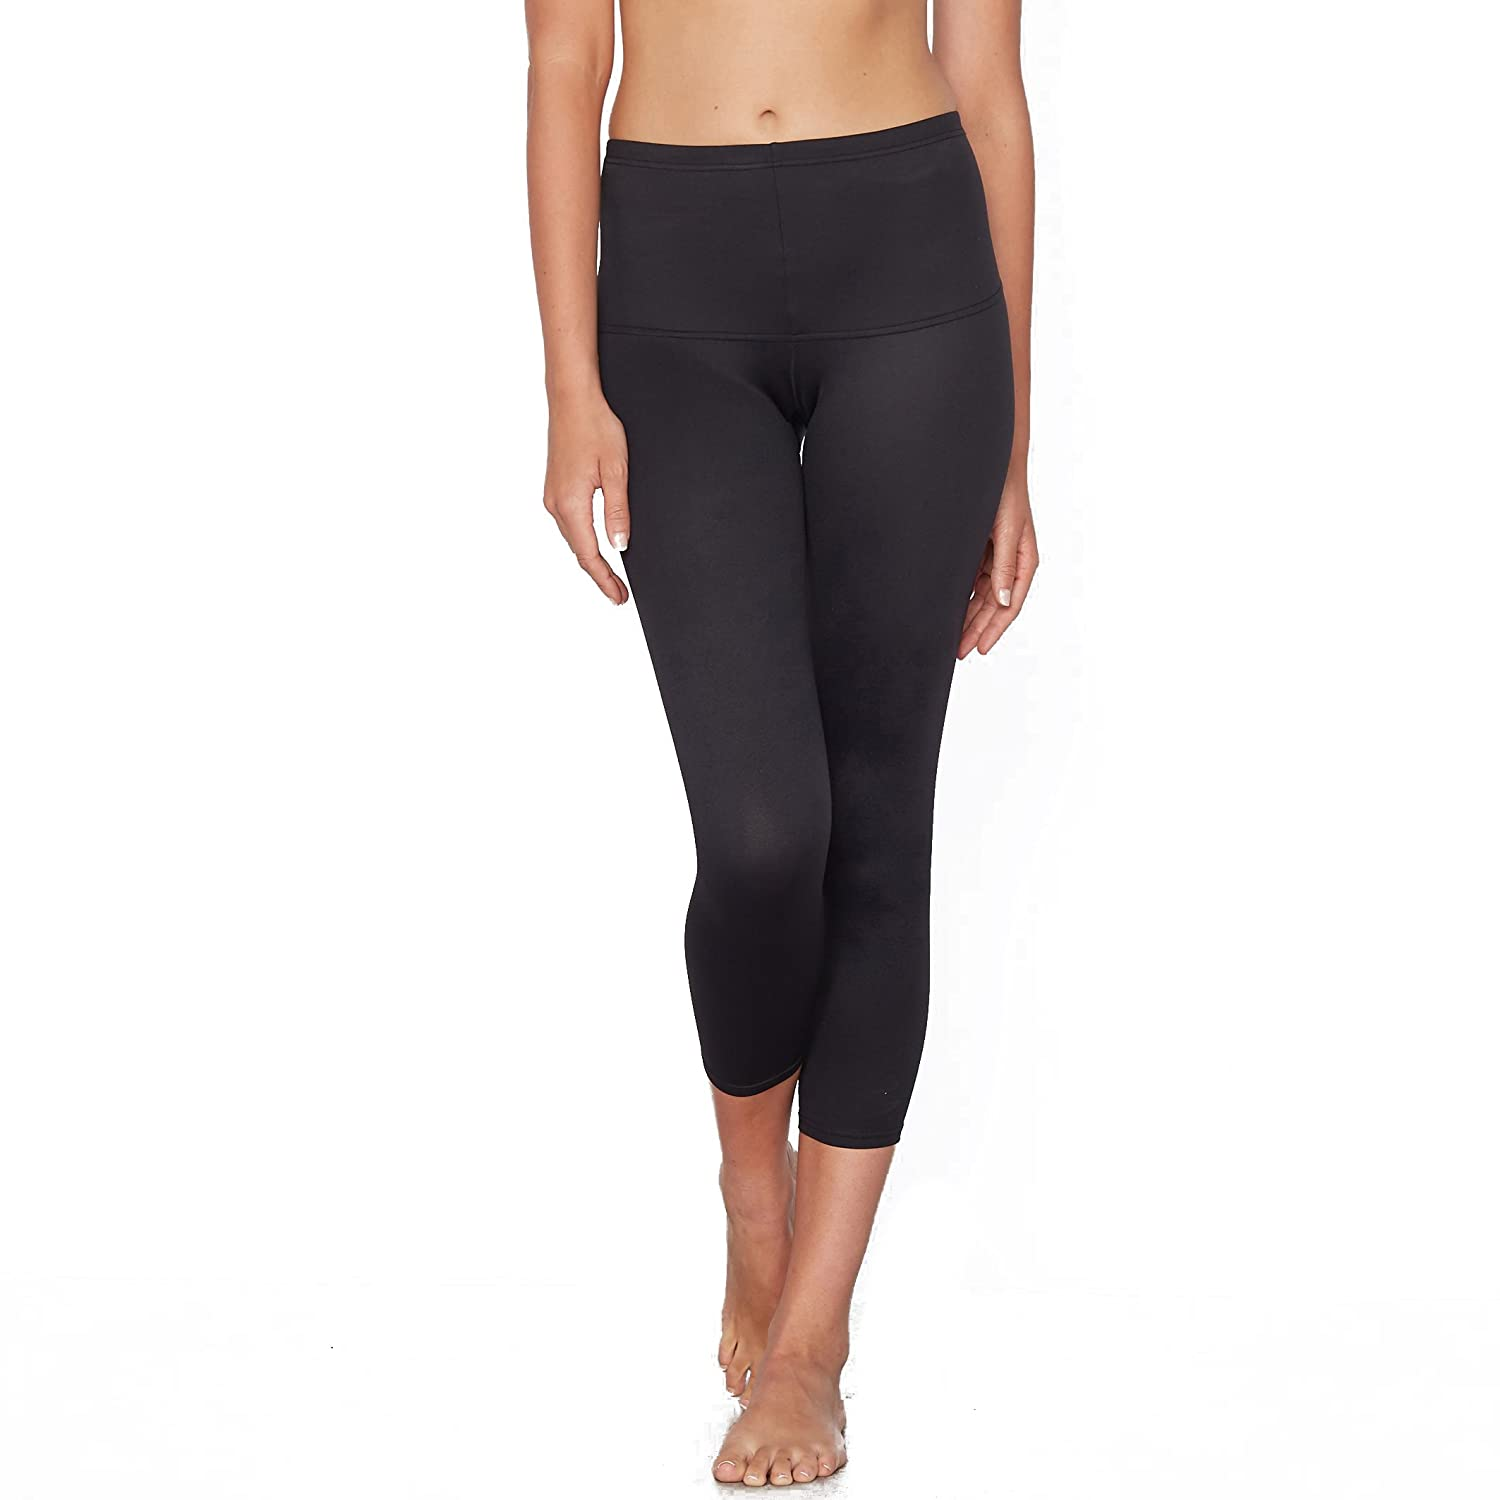 af47879b92e hot sale FLEXEES by Maidenform Shaping Leggings